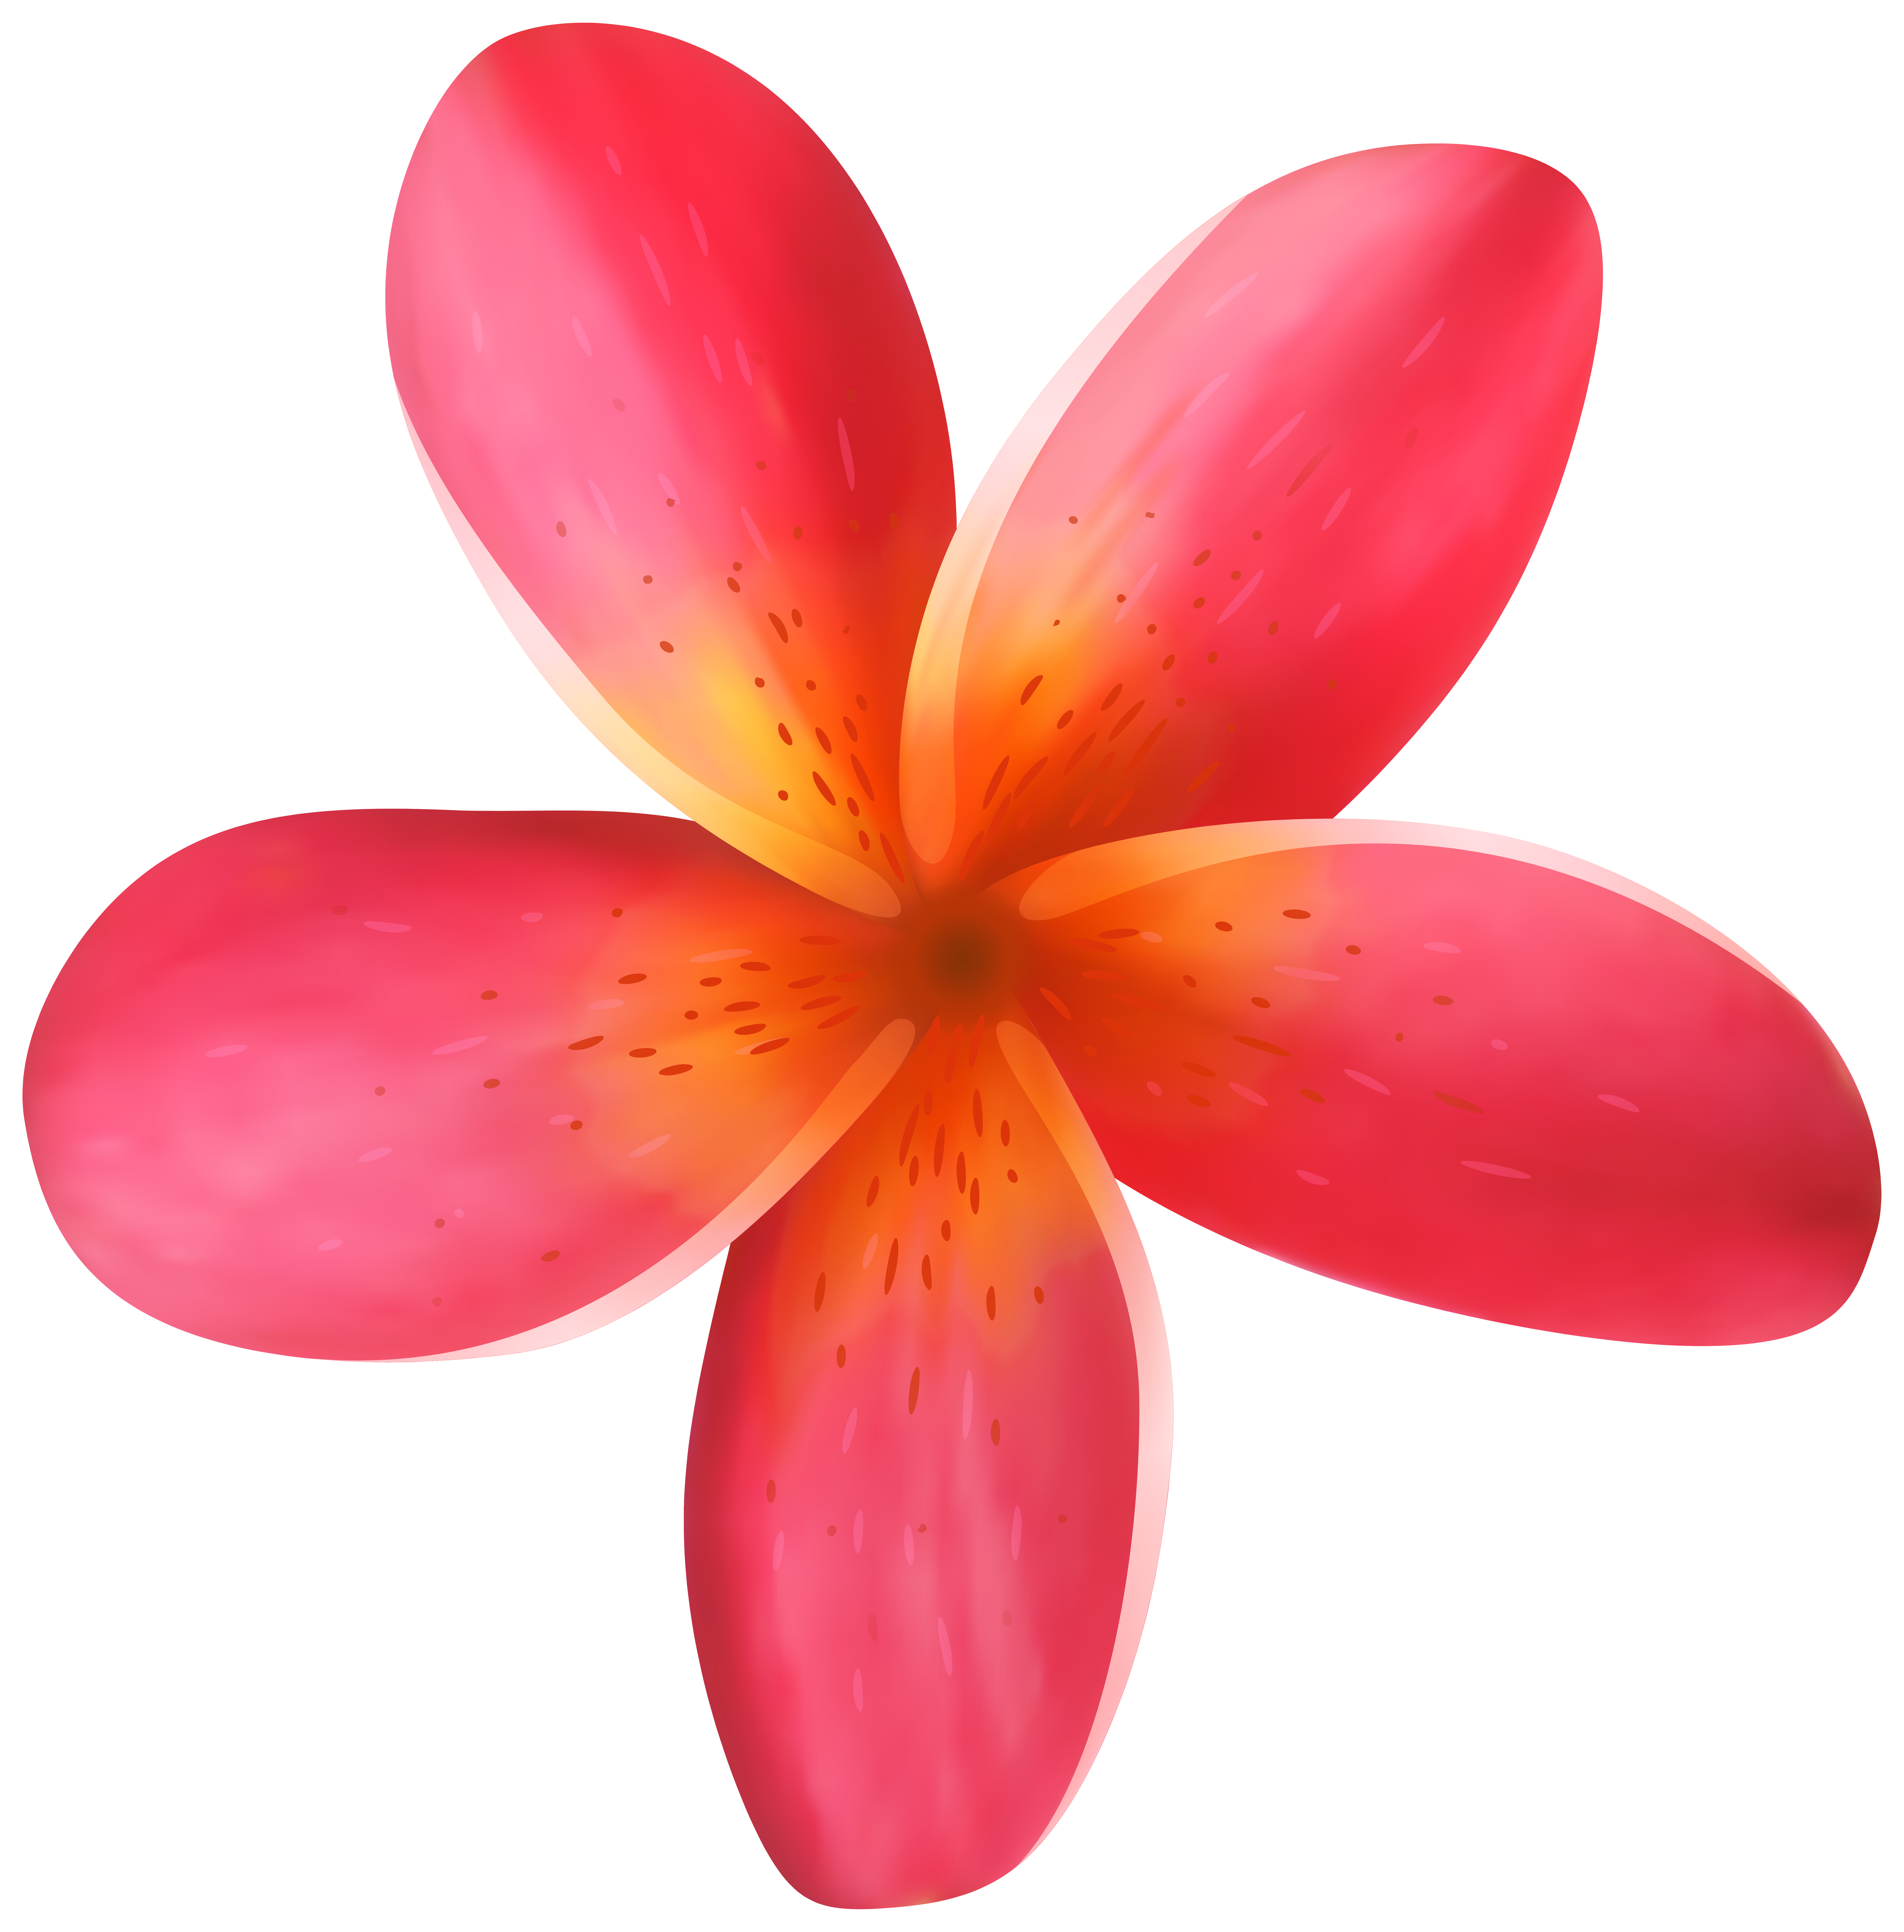 Clip art image gallery. Tropical flower png